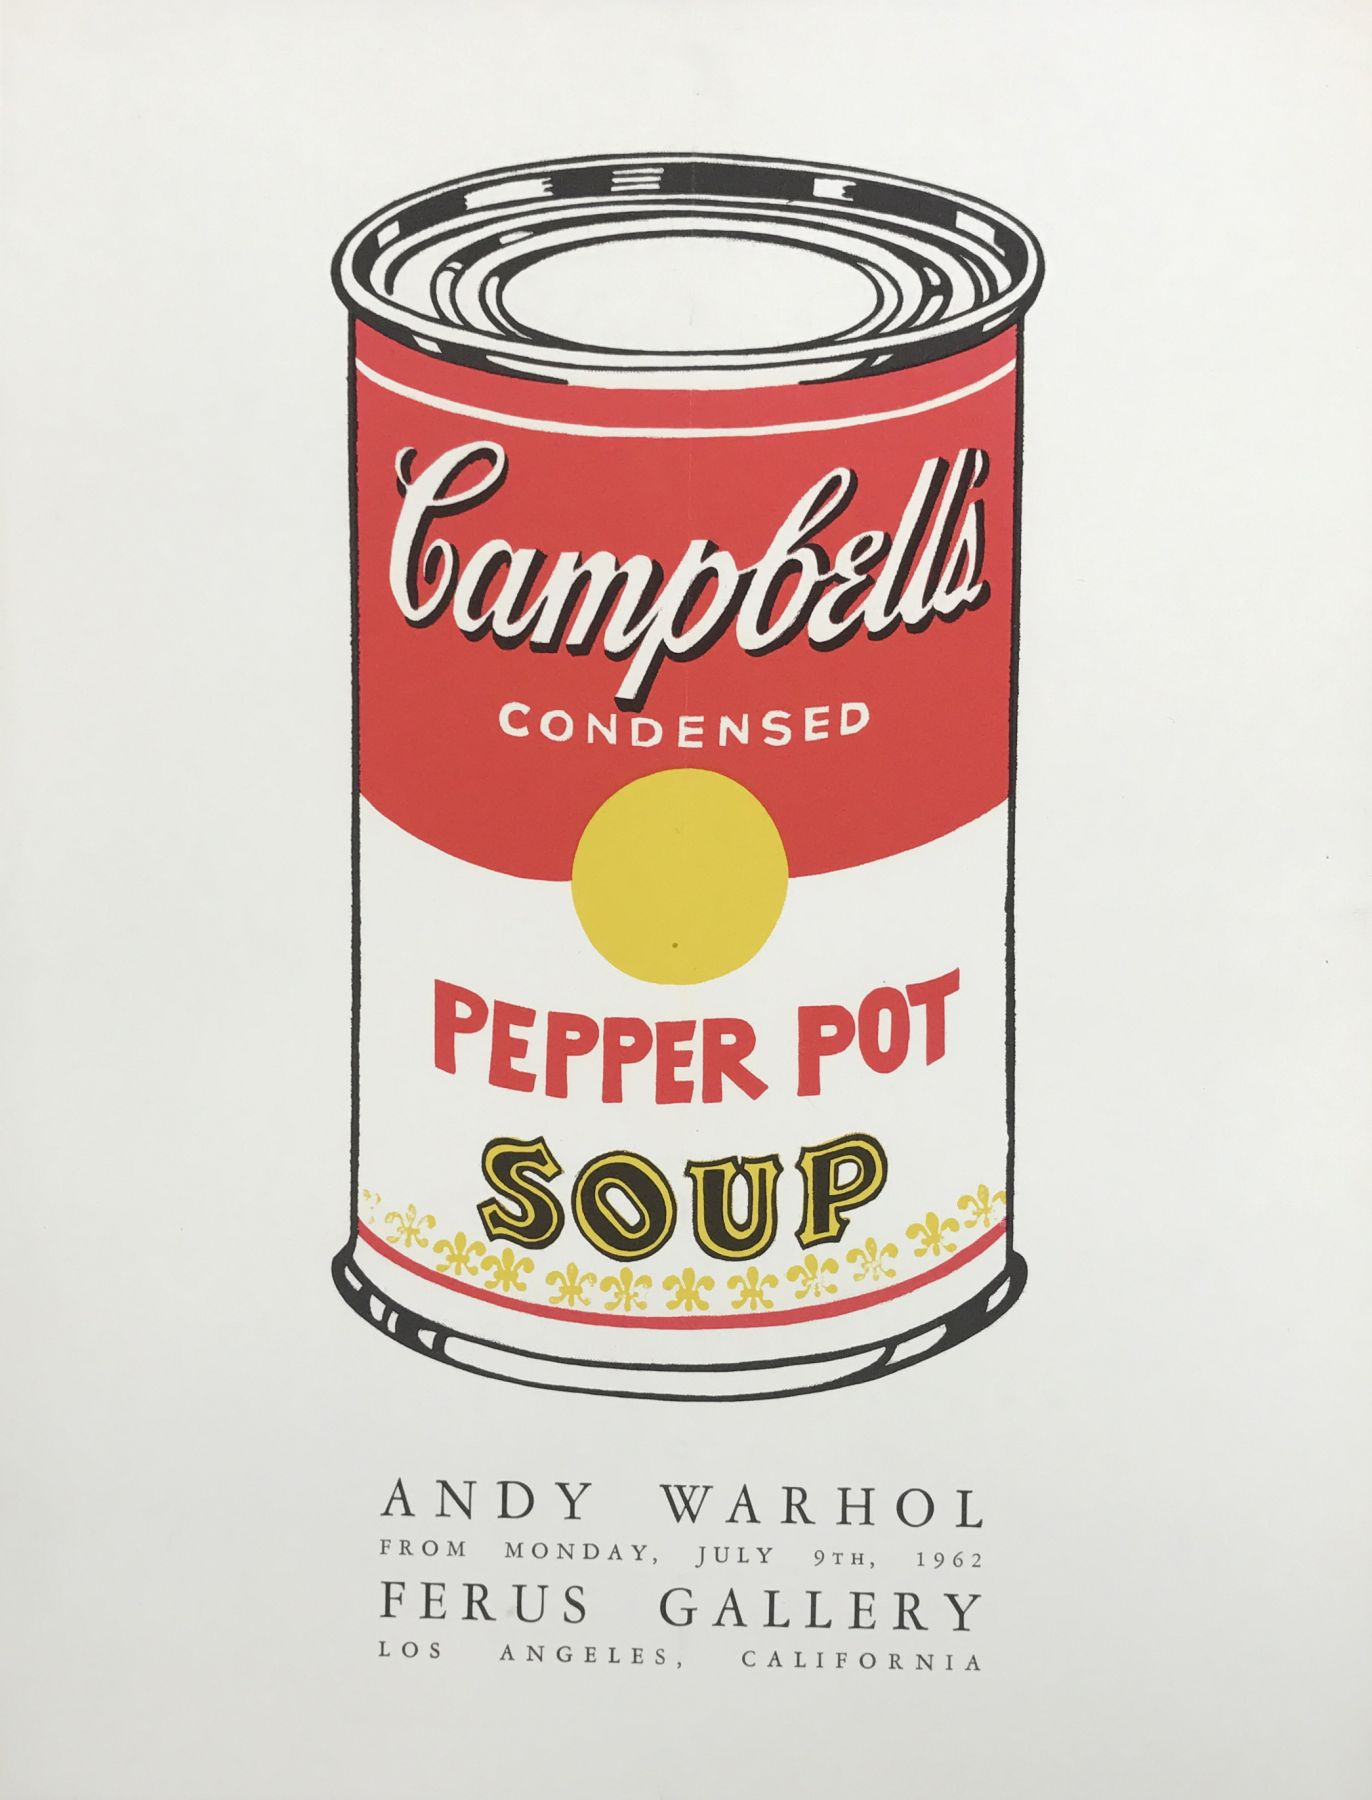 """ANDY WARHOL. """"Andy Warhol. Ferus Gallery"""". 1962. Image courtesy of Alden Projects™, New York."""